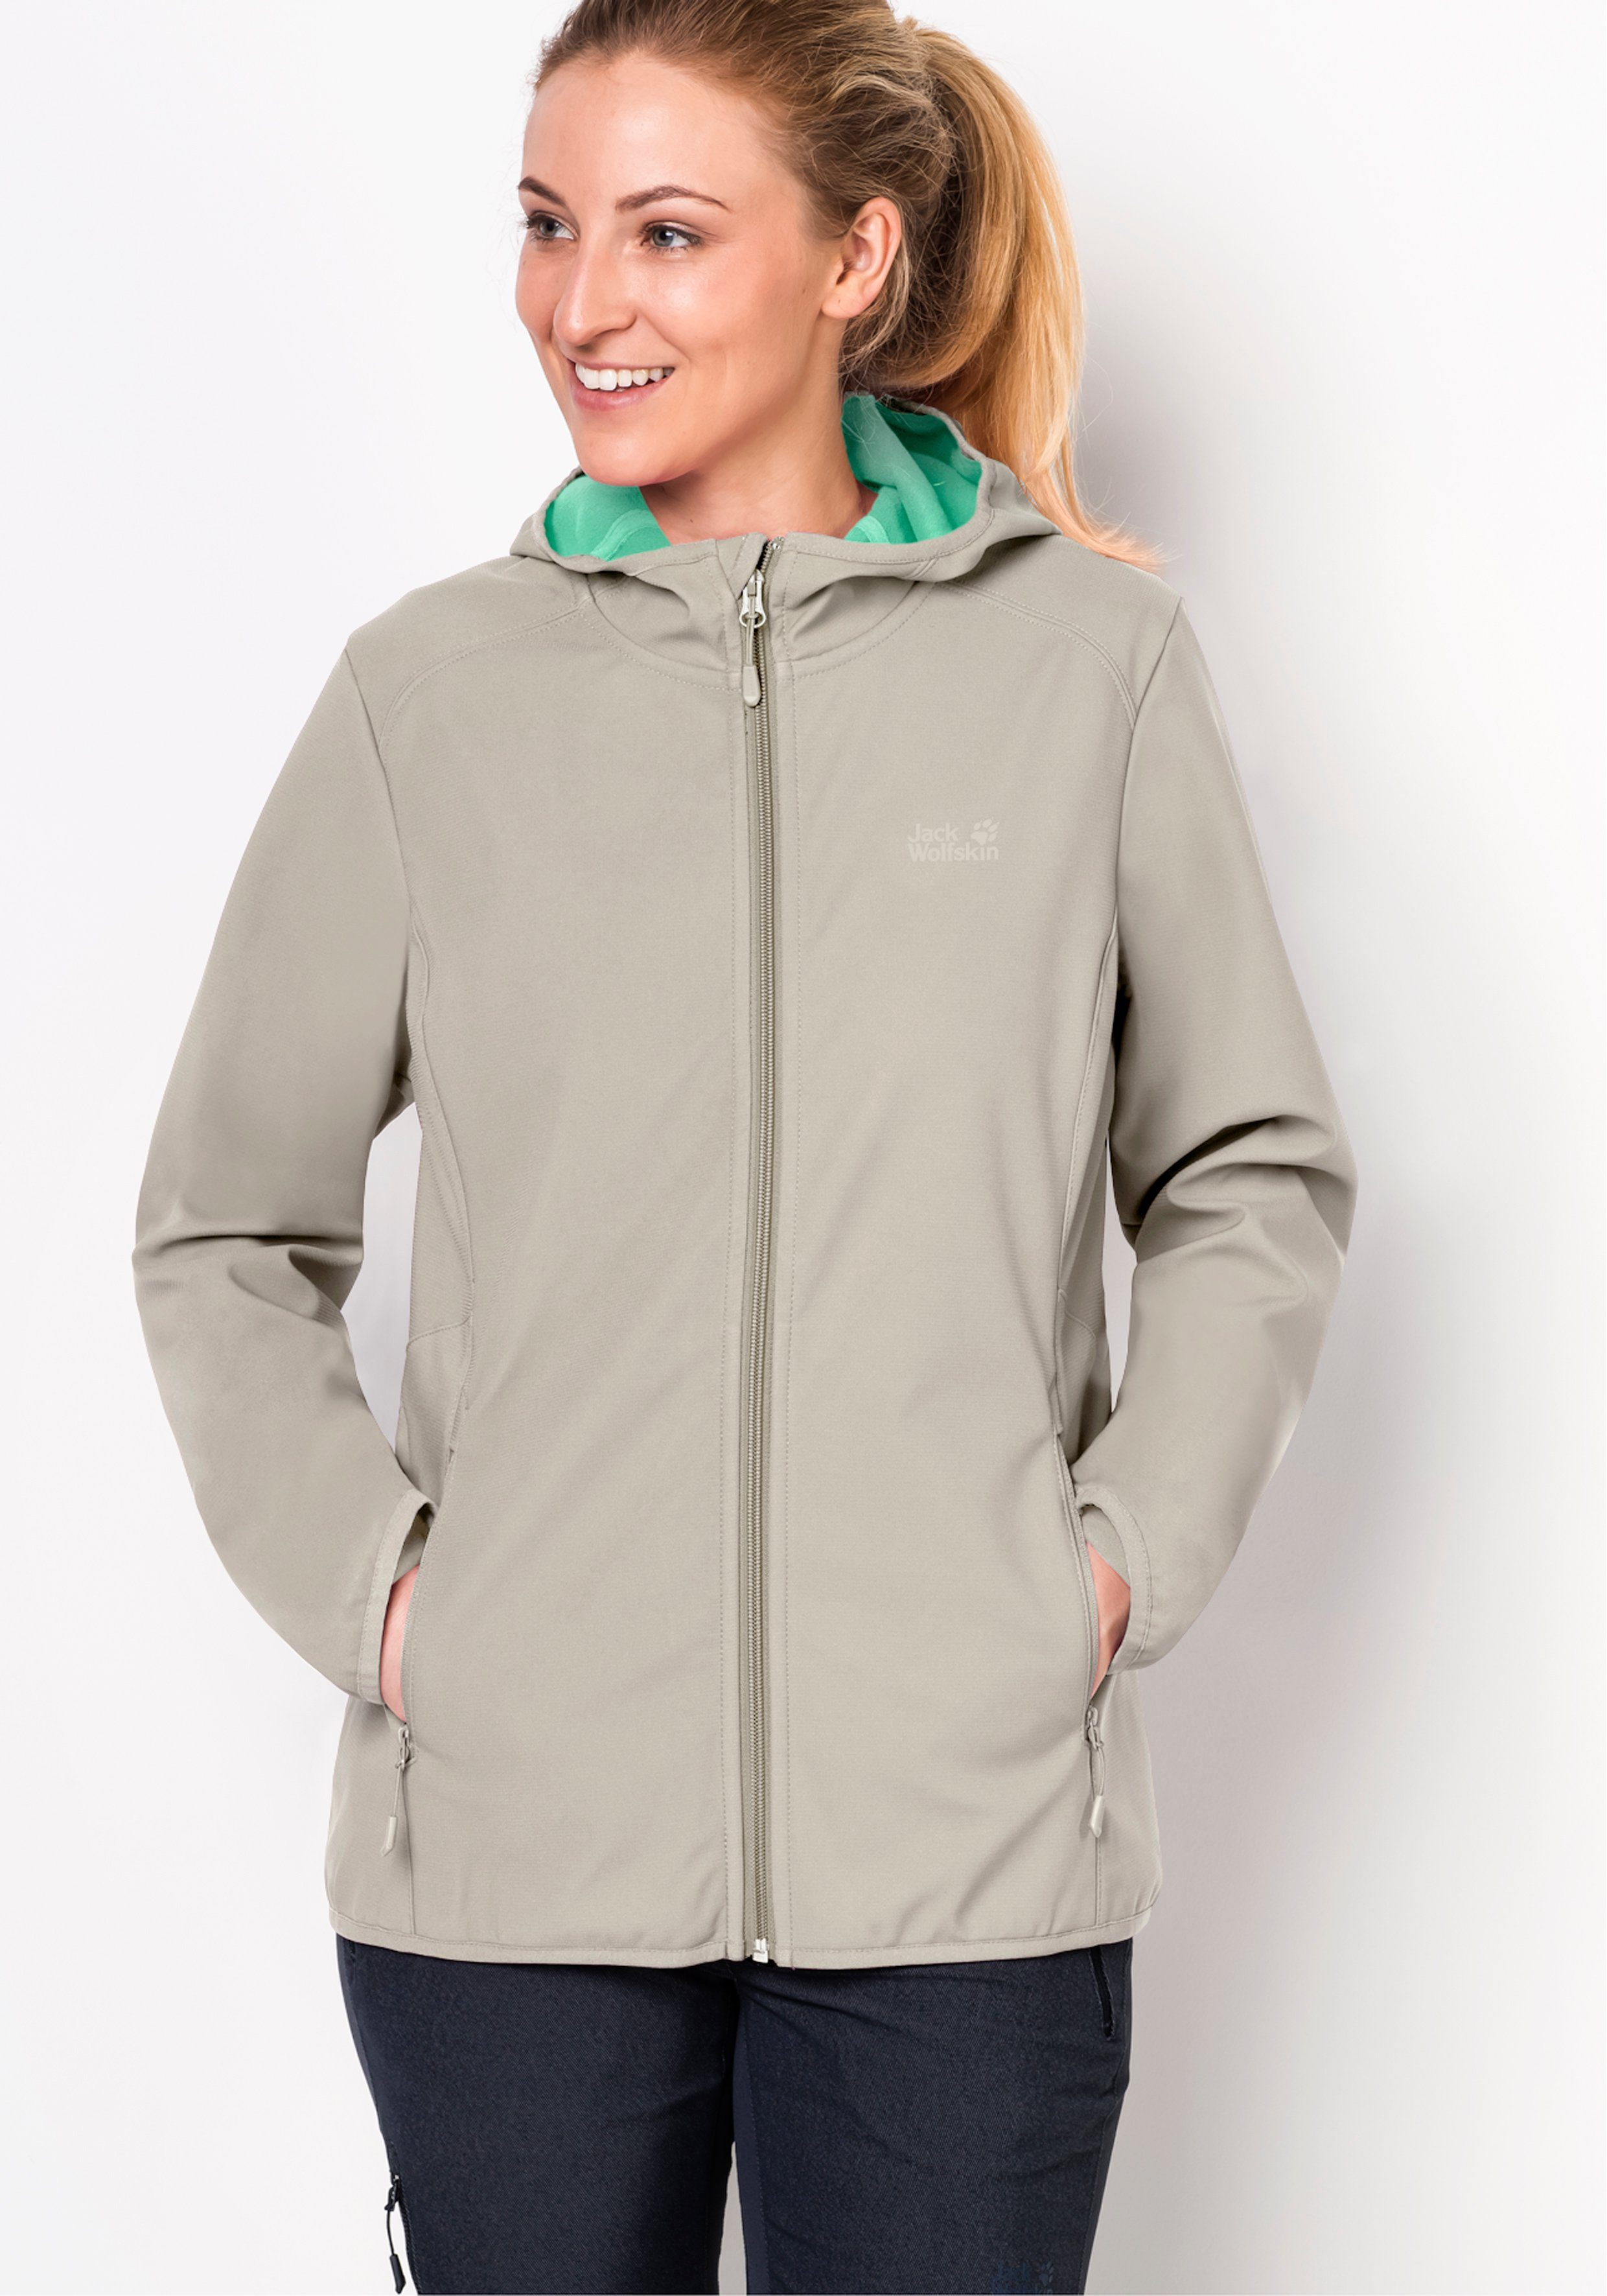 Jack Wolfskin Softshelljacke  NORTHERN POINT WOMEN  Preisvergleich